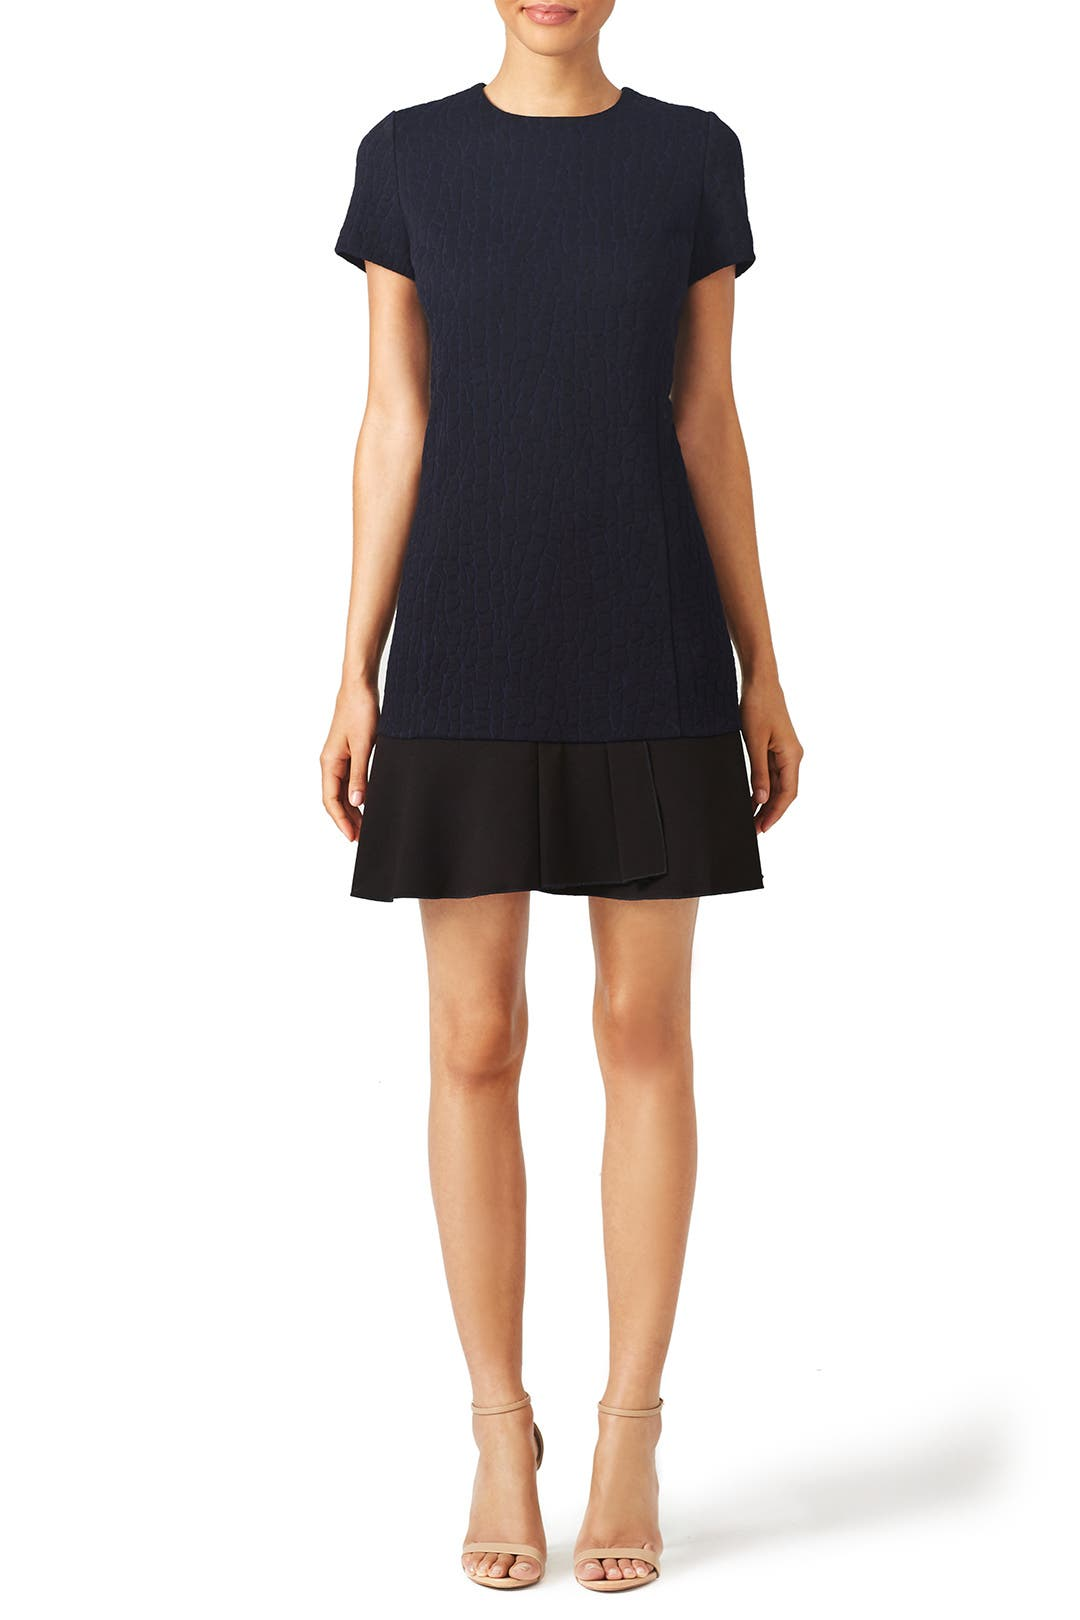 5c89c0d8452 Dresses - Tory Burch Great selection and prices for Wedding Gifts ...